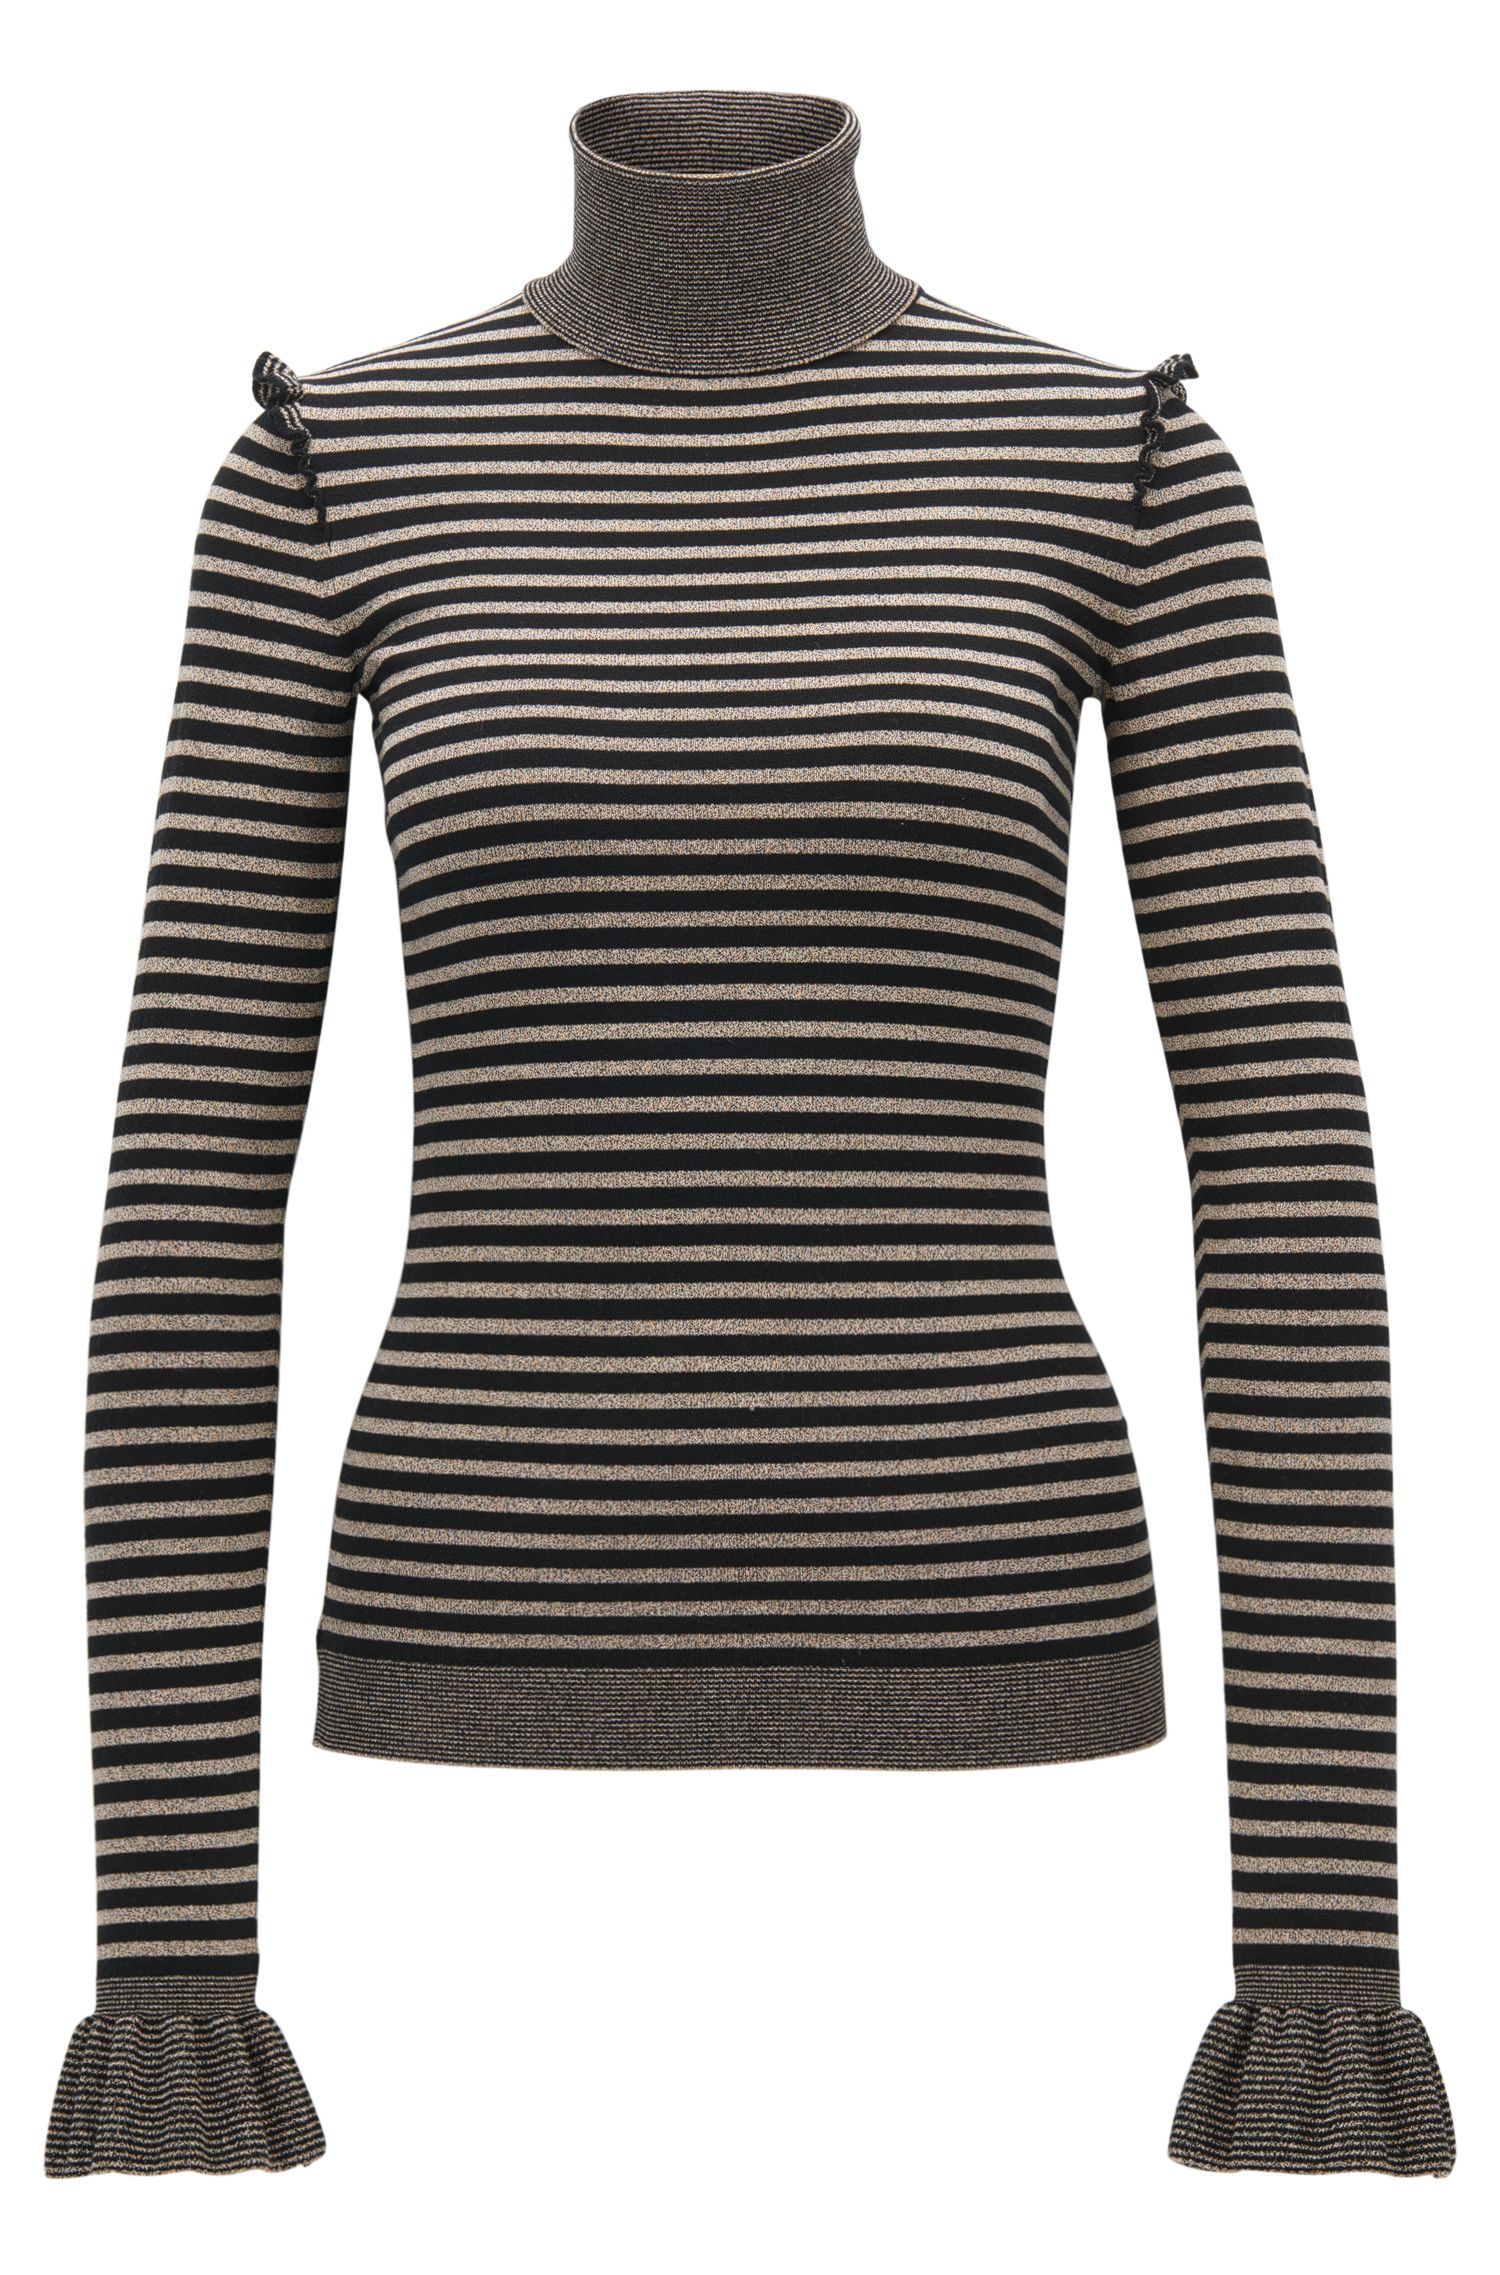 Turtle-neck striped jumper with ruffle details